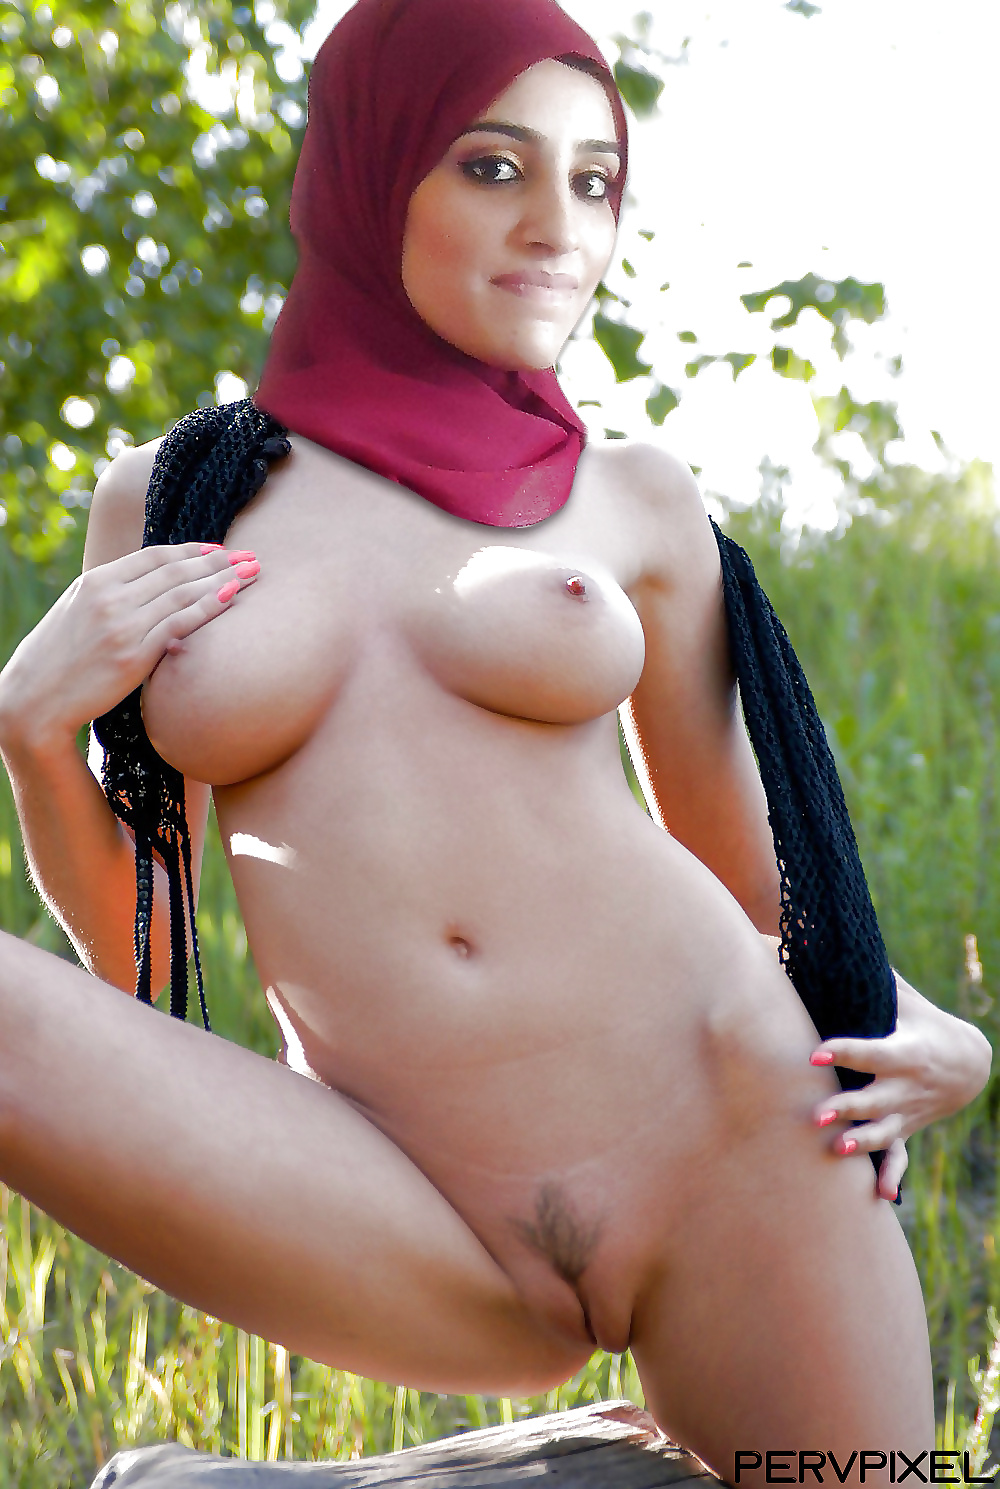 Cute girl naked hijab